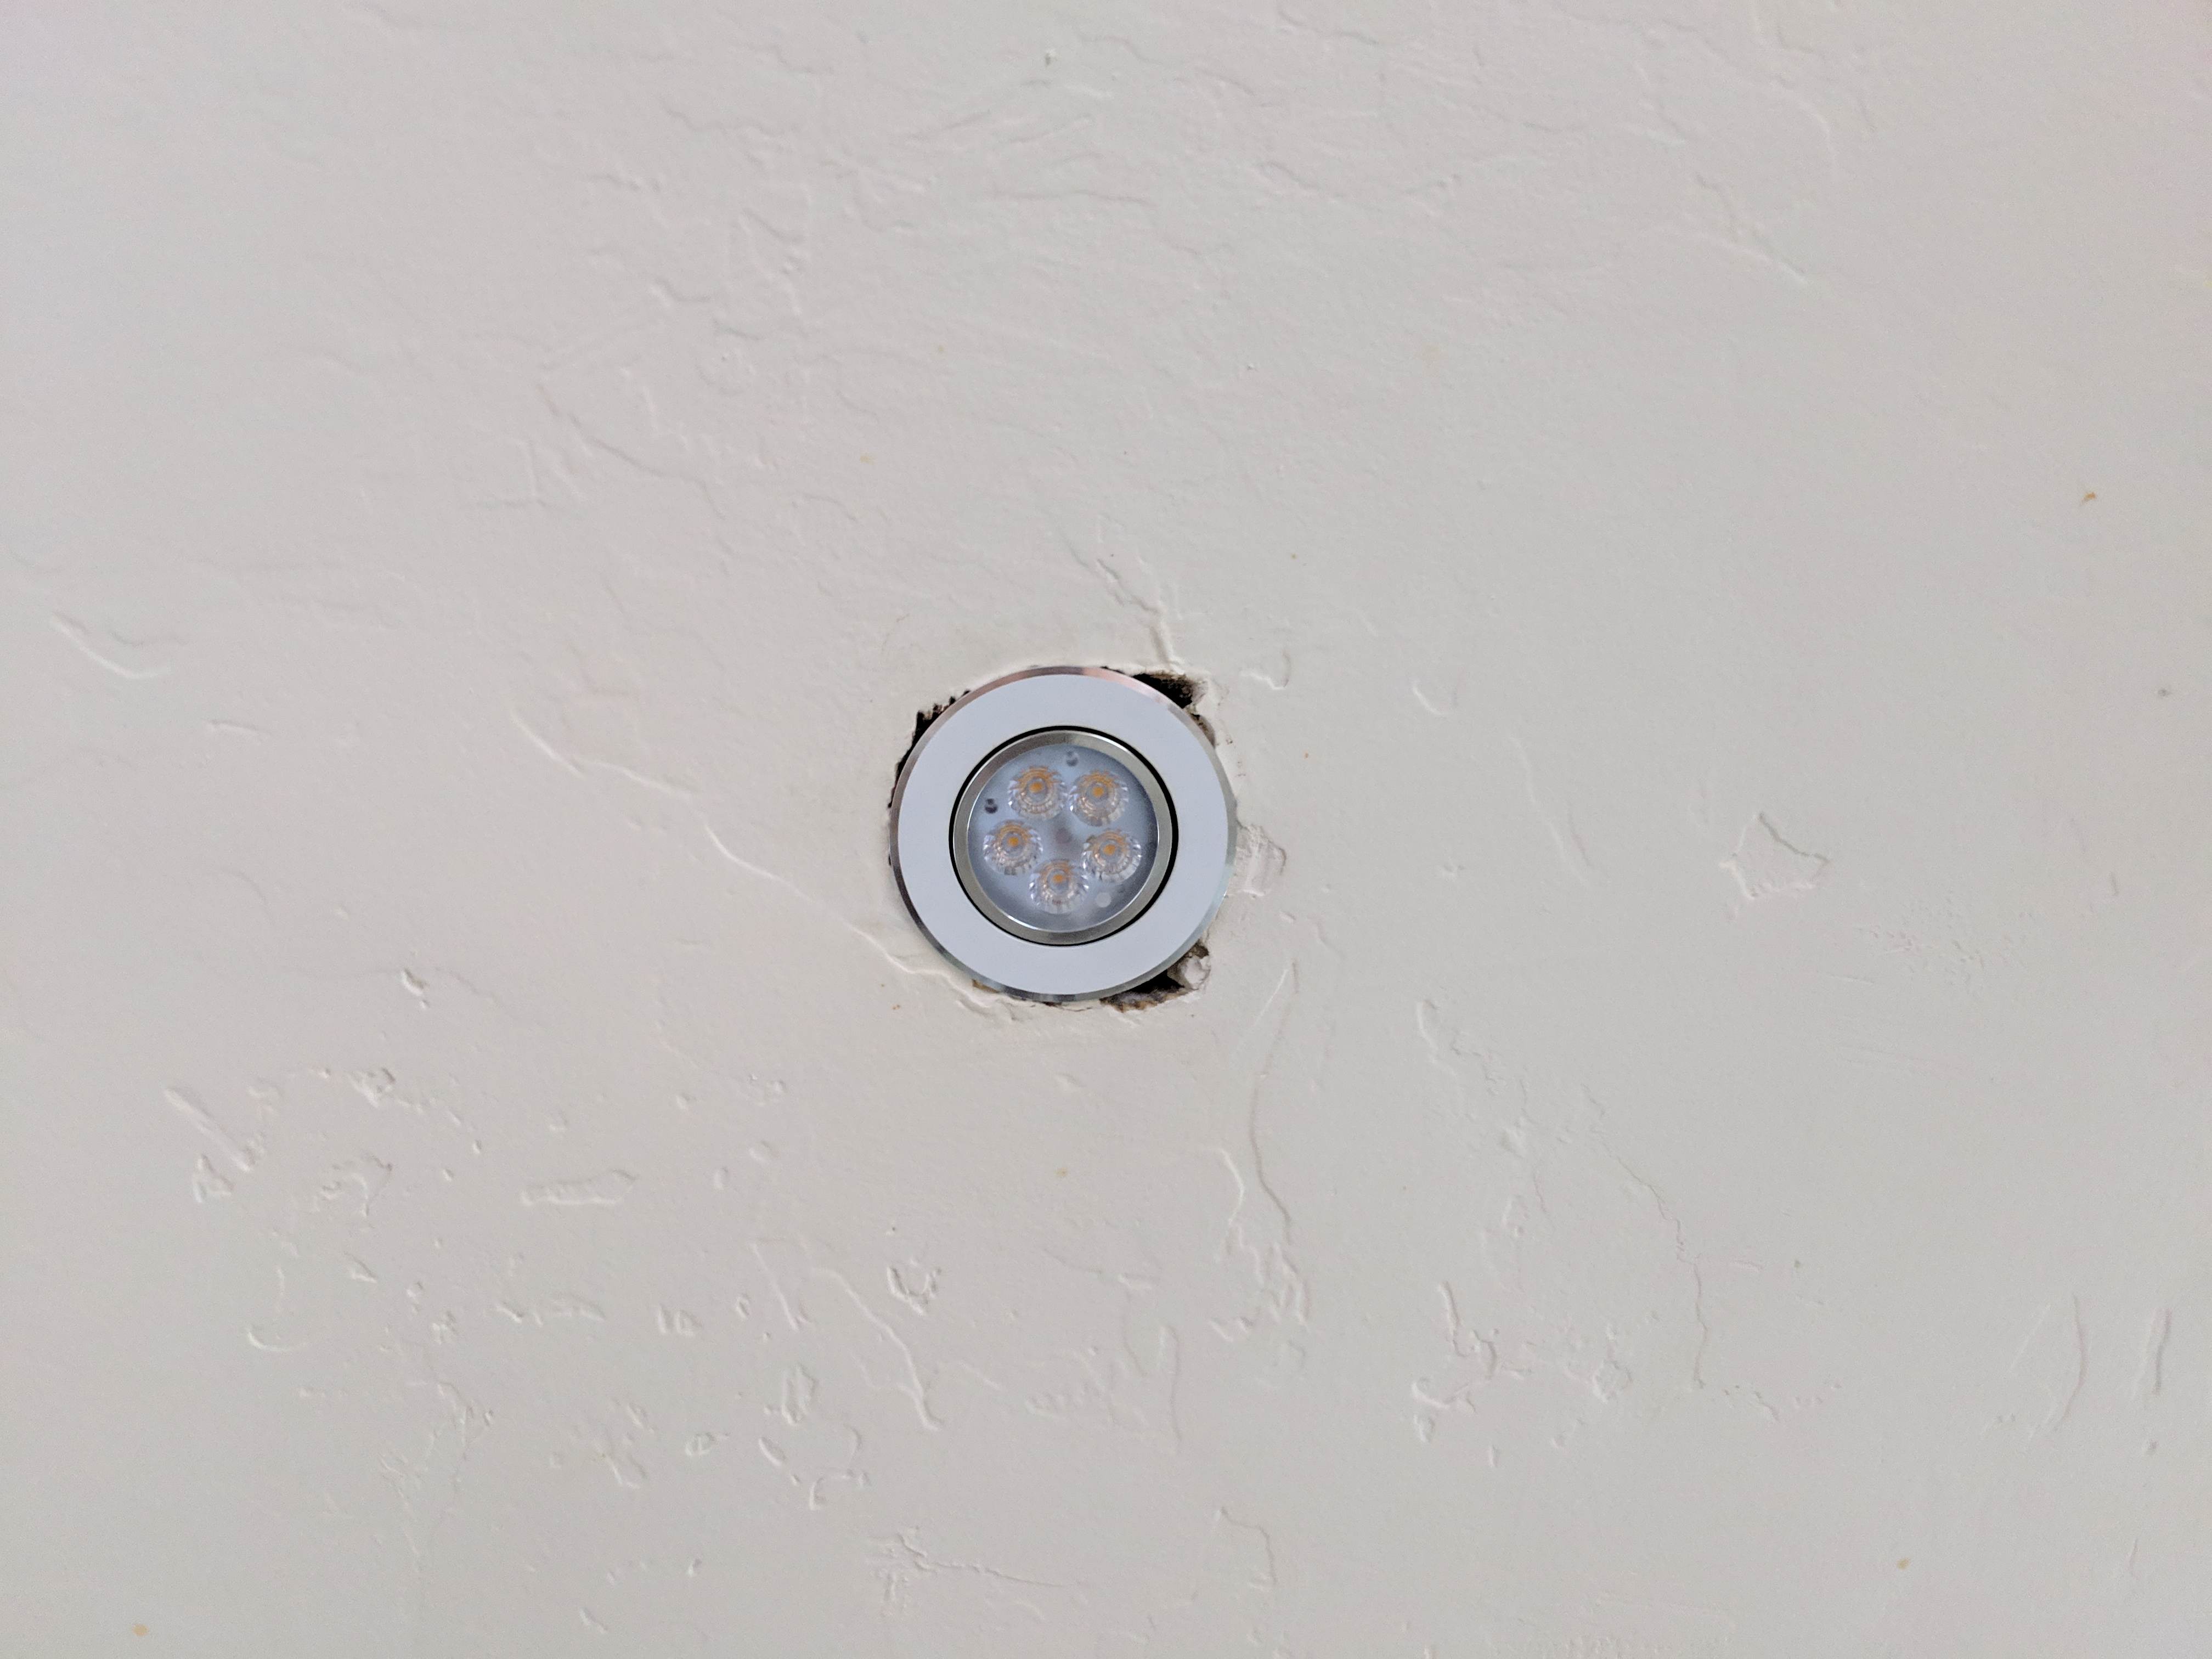 01-emailer-ceiling